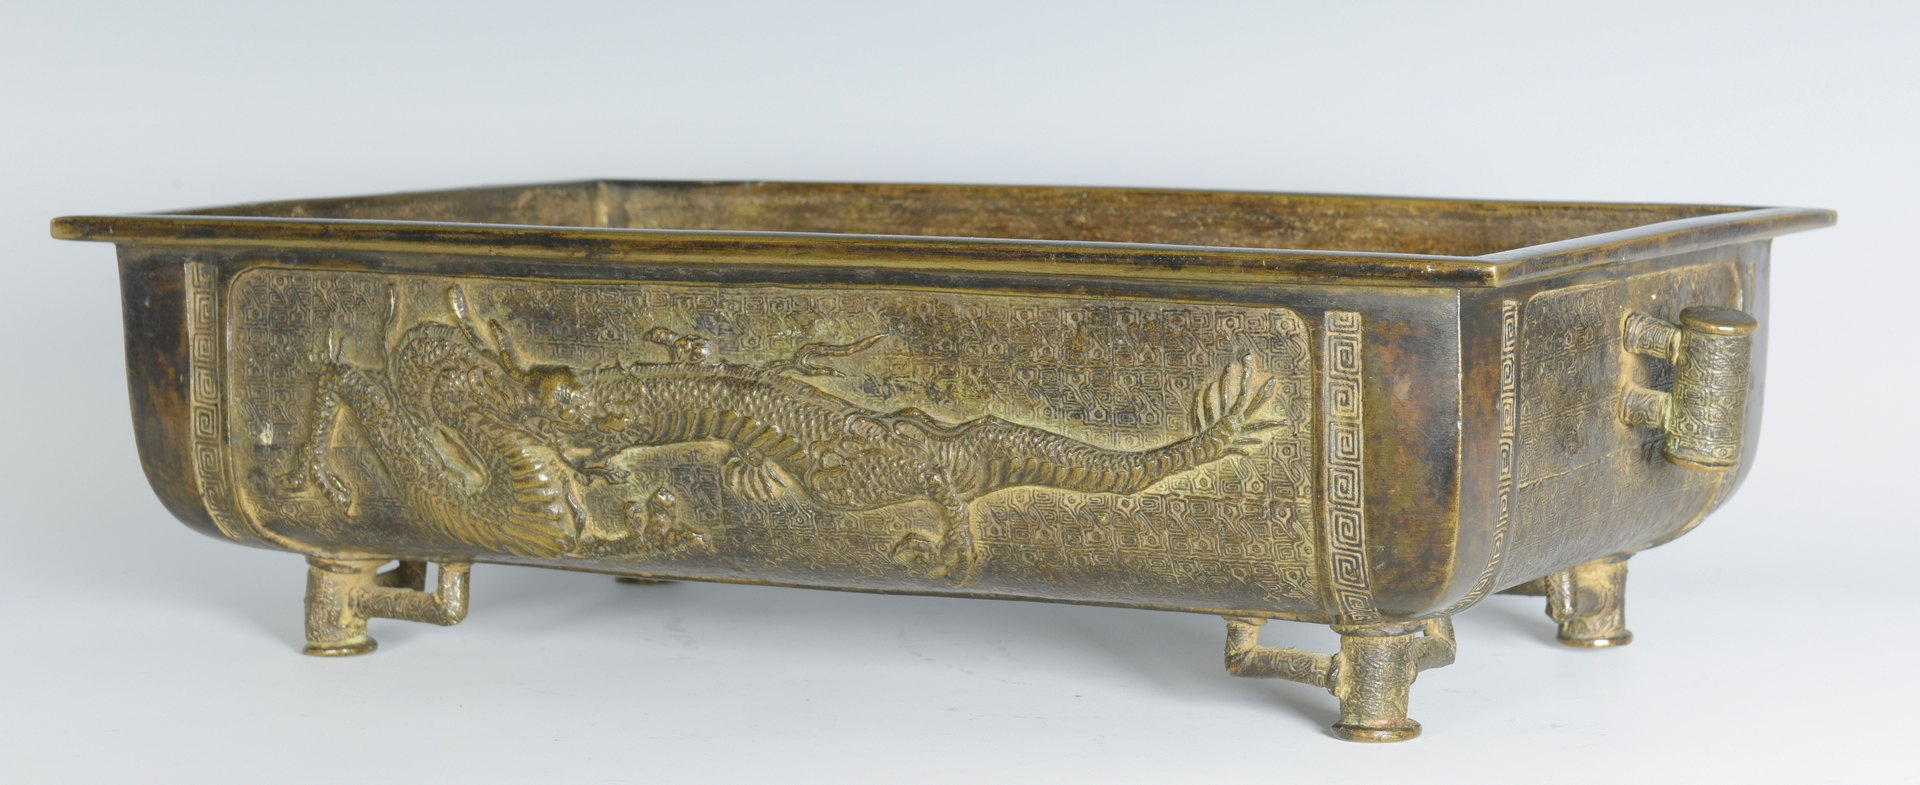 lot 326 bronze jardiniere dragon decoration